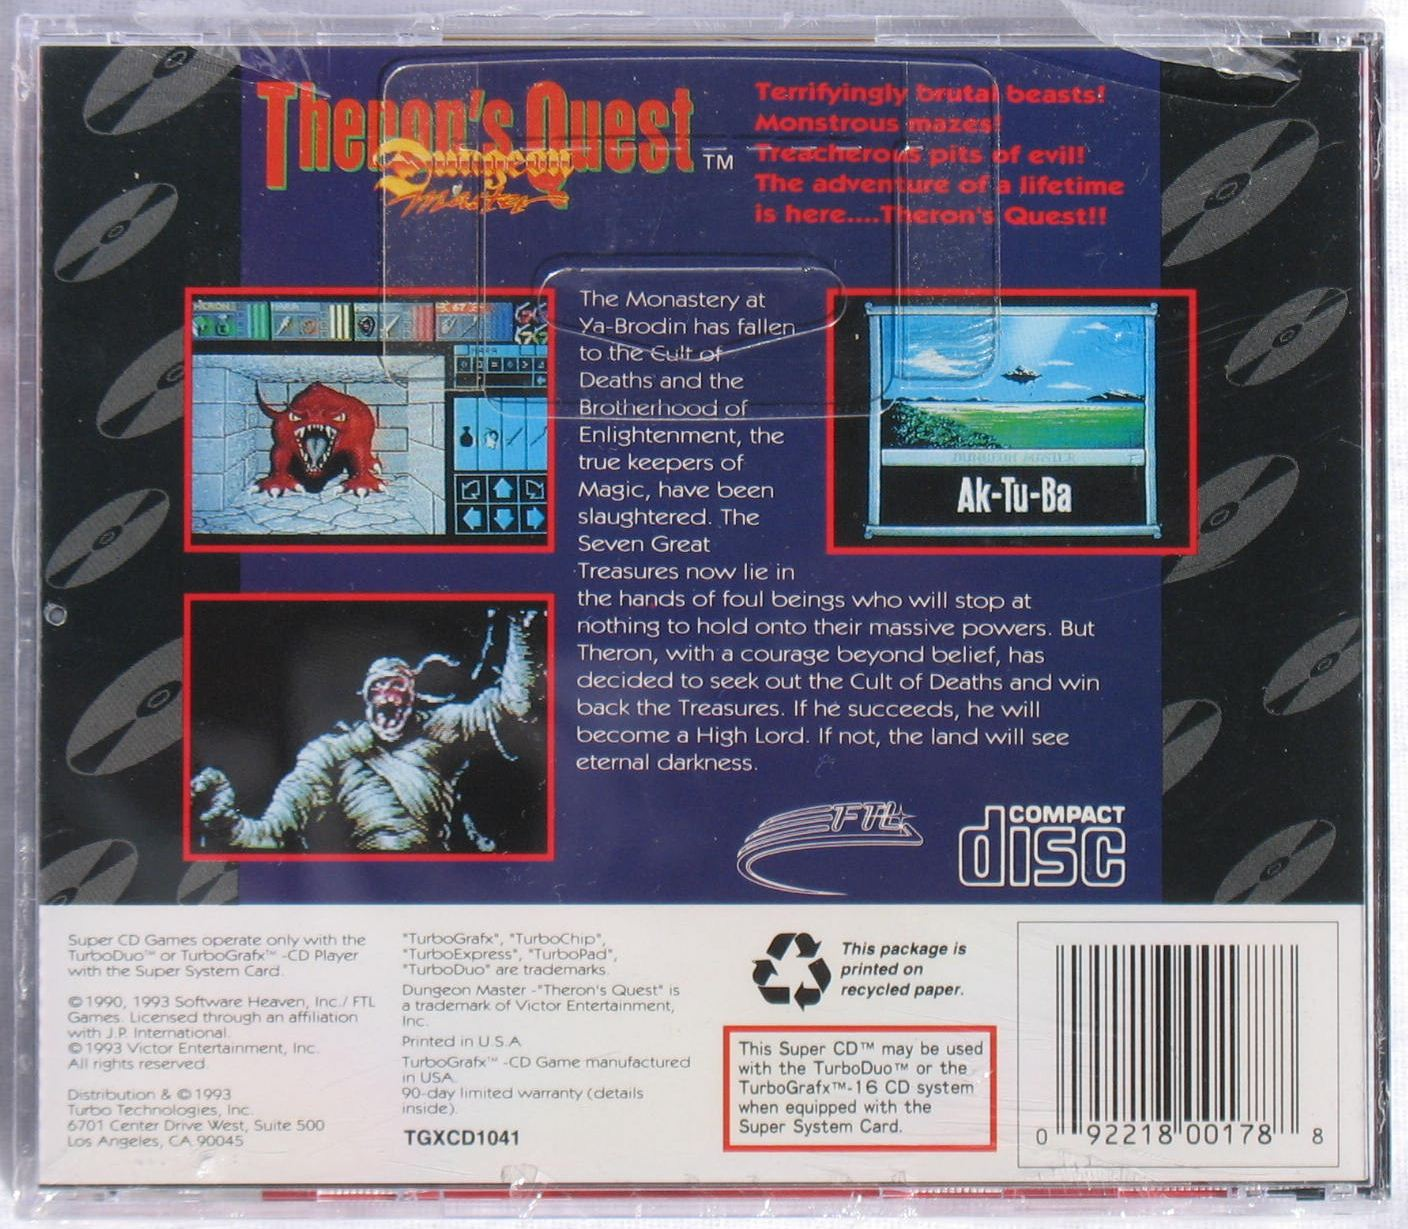 Game - Theron's Quest - US - Turbografx - Box - Back - Photo